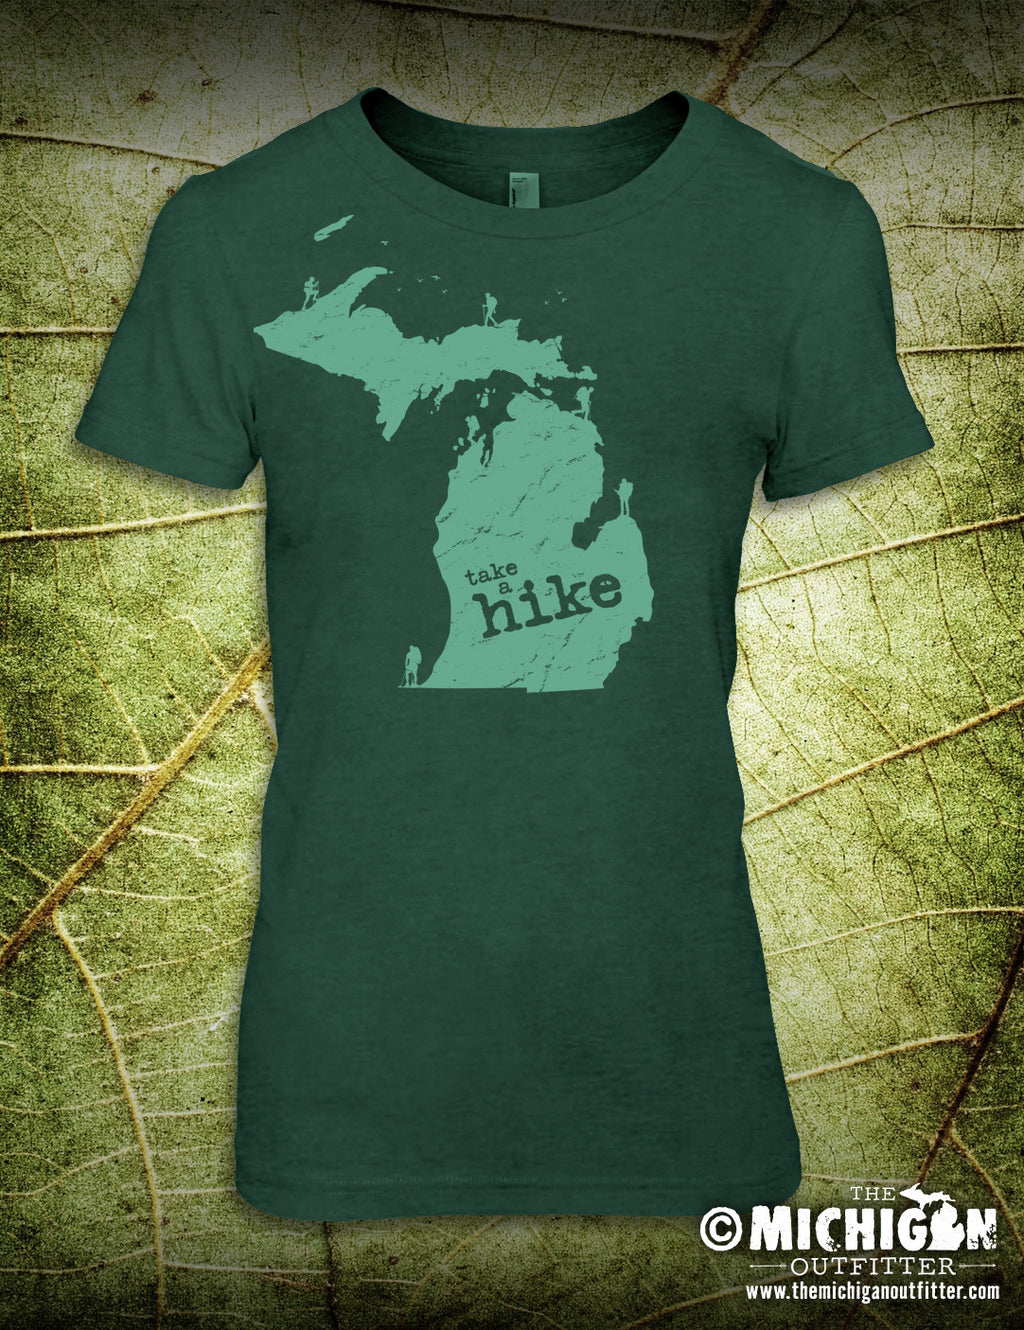 Take A Hike - Heather Dark Green